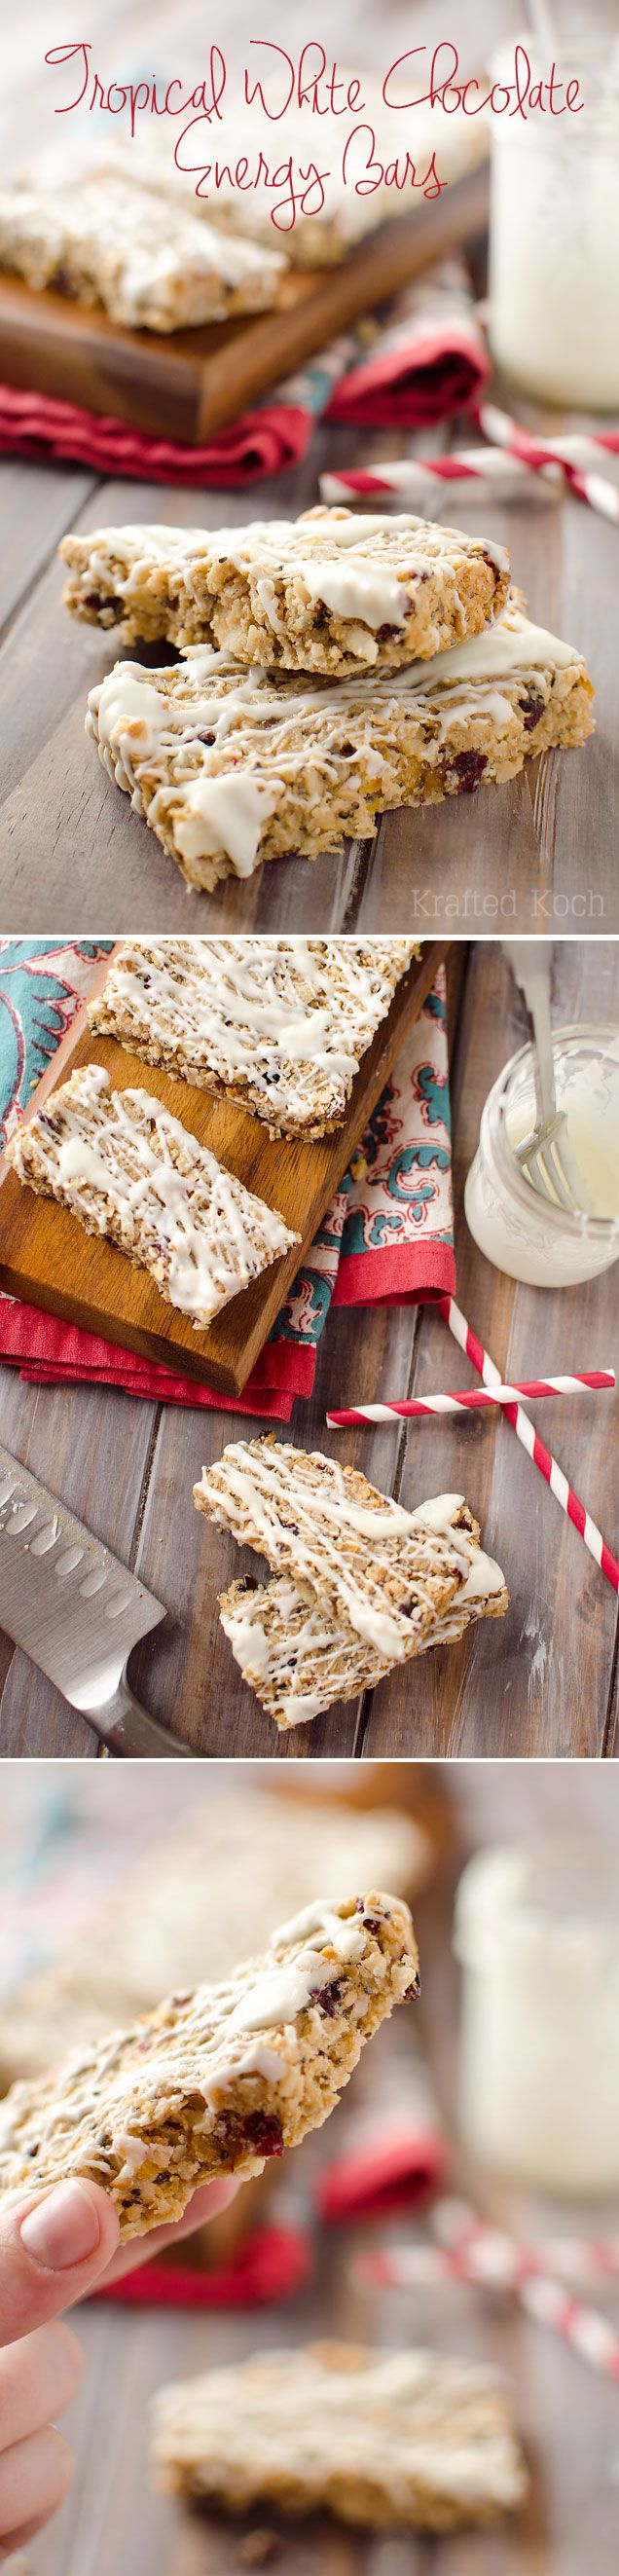 Tropical White Chocolate Energy Bars - Krafted Koch - Loaded with healthy grains, nut butter, coconut, macadamia nuts and sweet dried fruits all drizzled with white chocolate for a balanced energy bar that is decadently delicious!